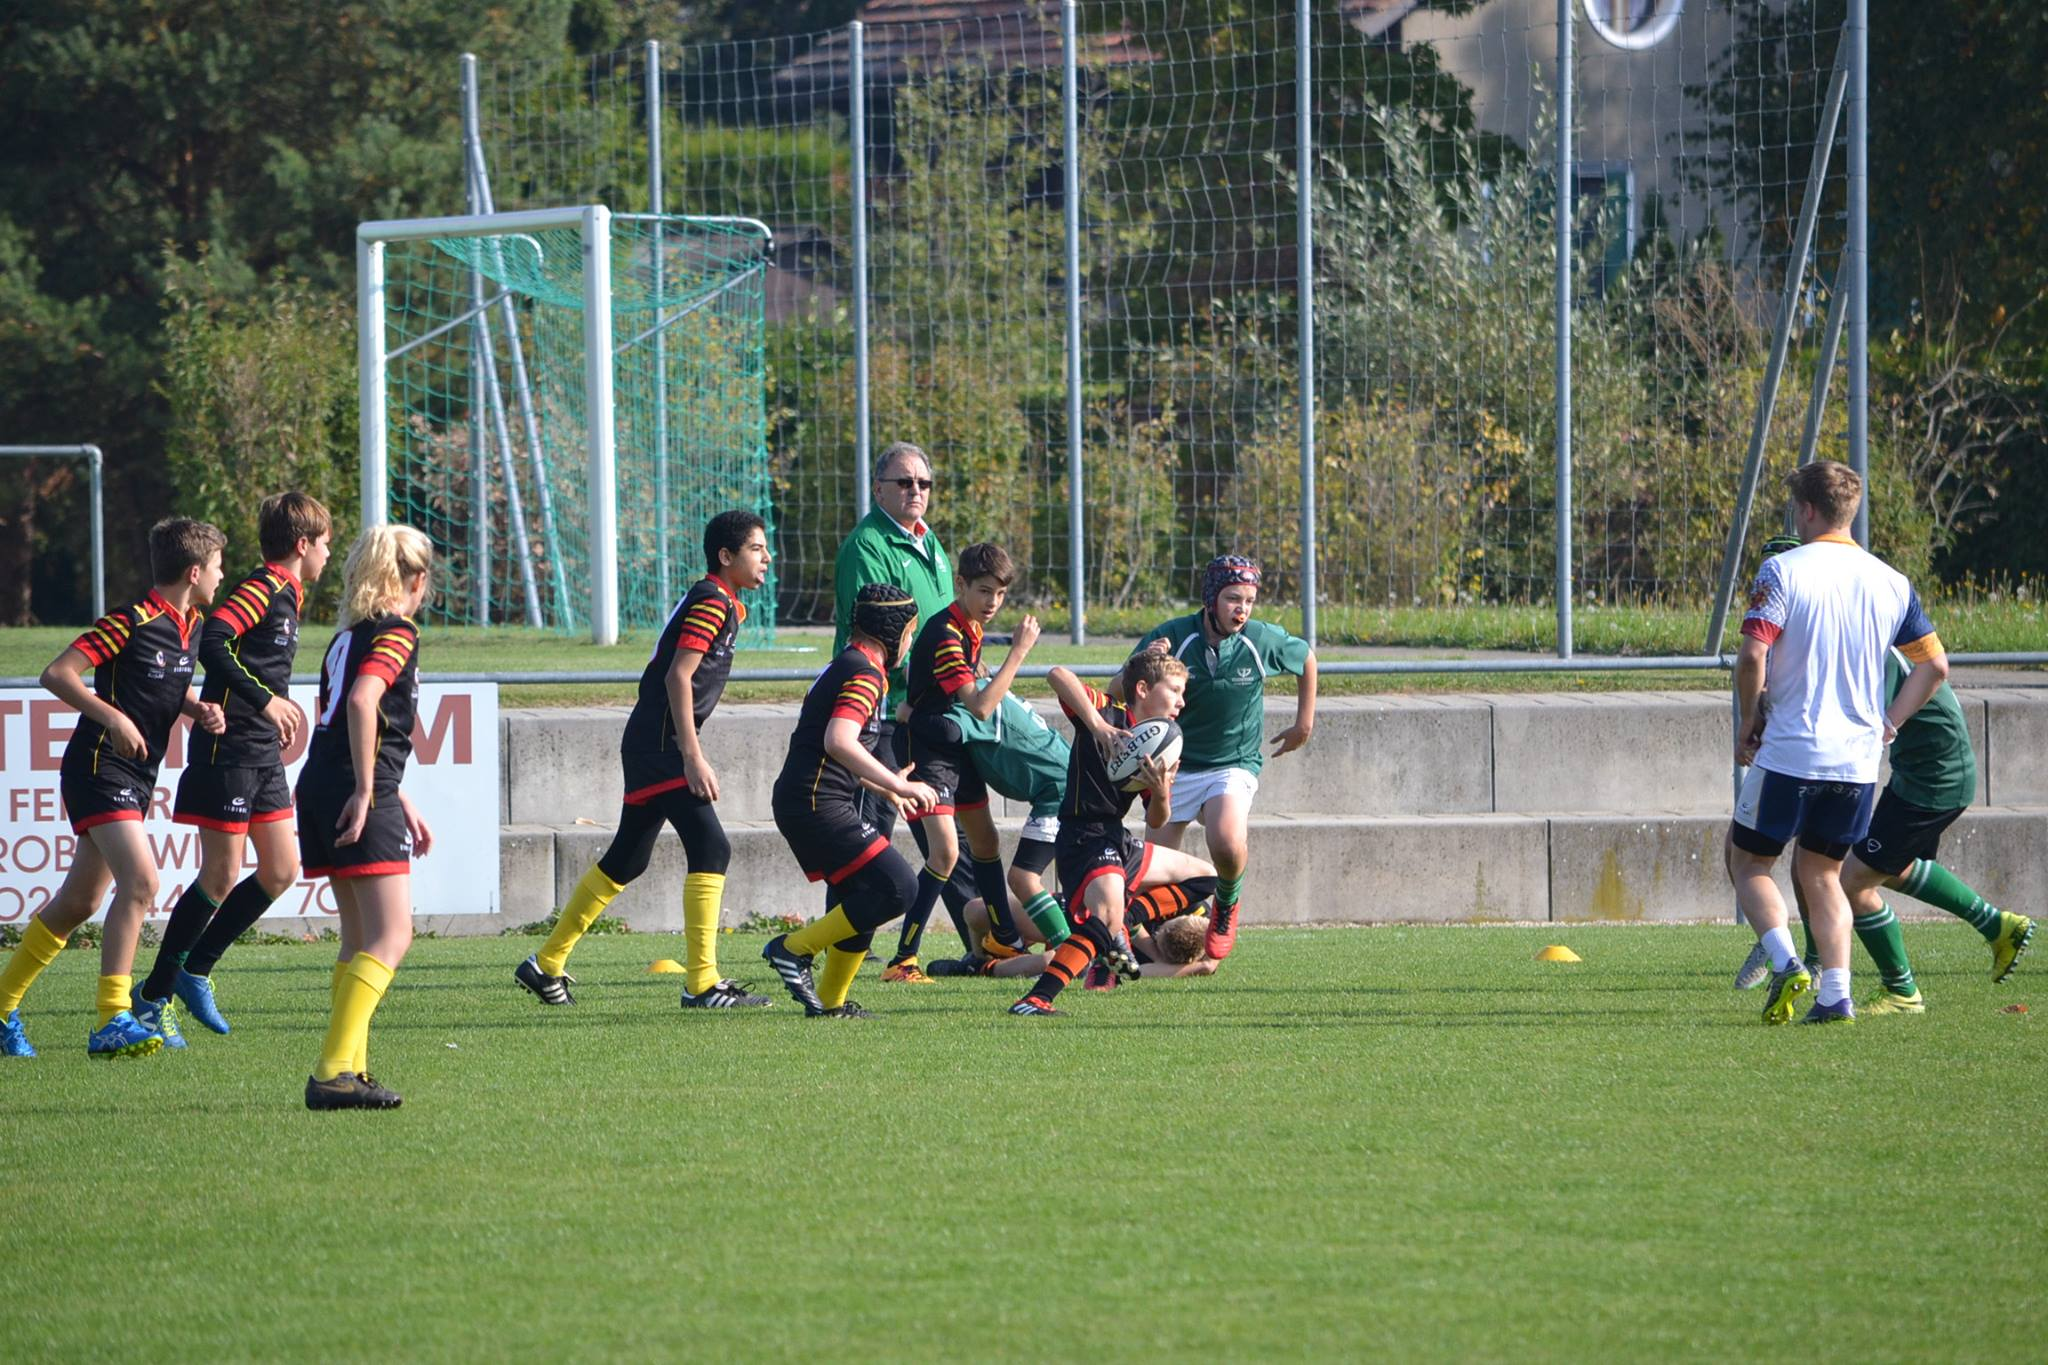 U14 vs Ecole Int. II 8.10.2016 5